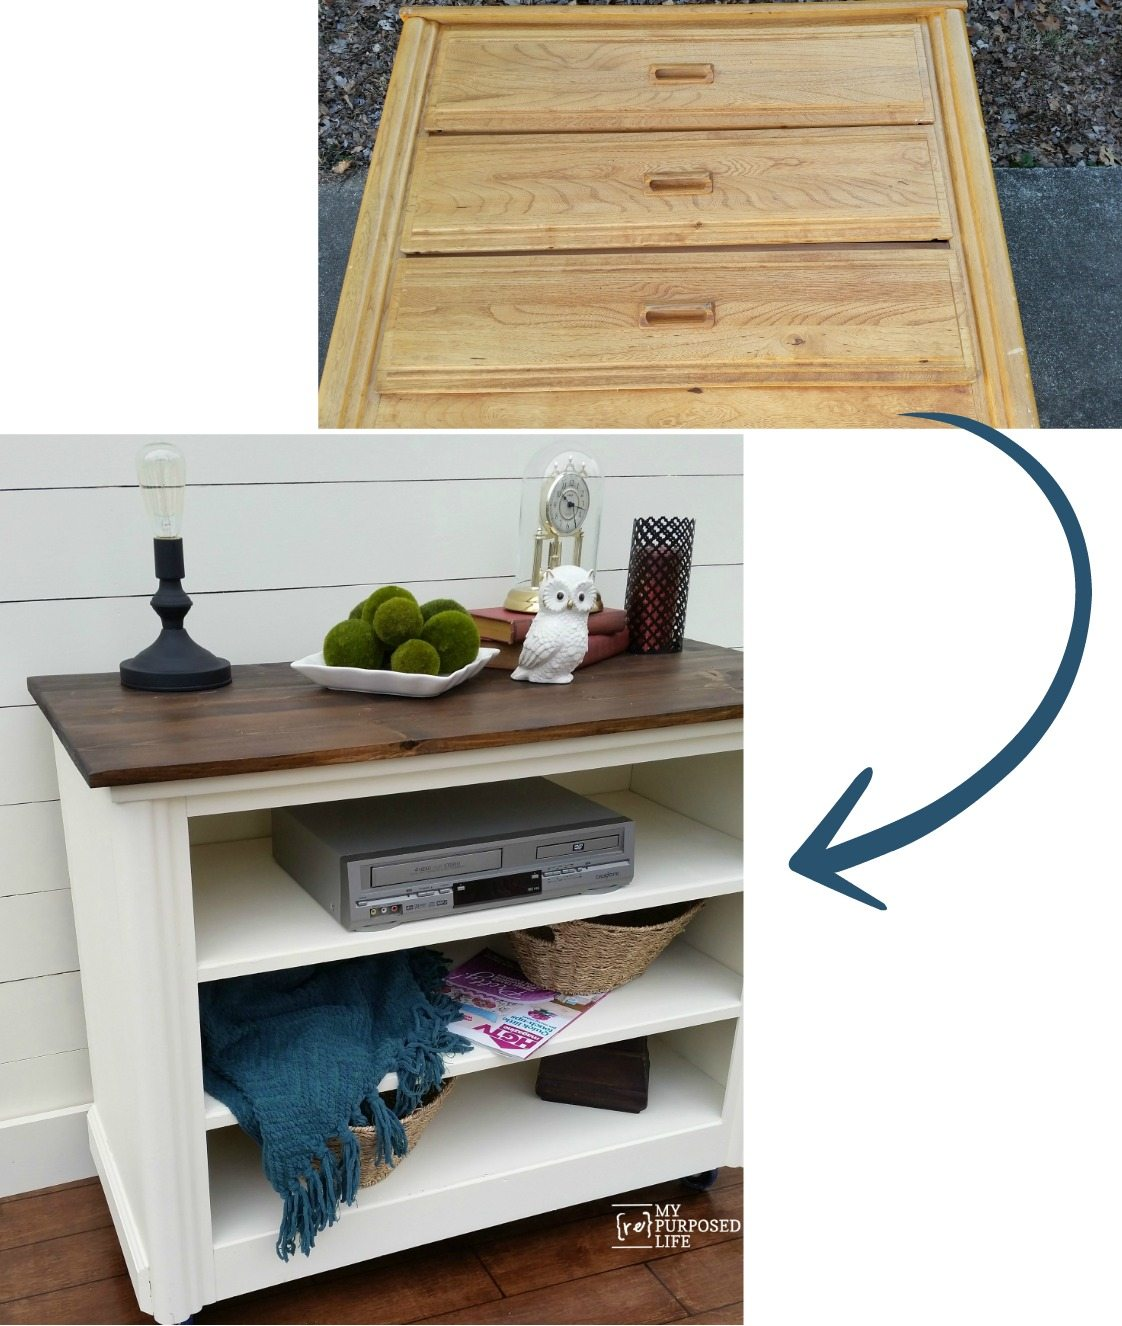 17 Best Images About Repurposed Furniture On Pinterest: Repurposed Dresser Tv Stand